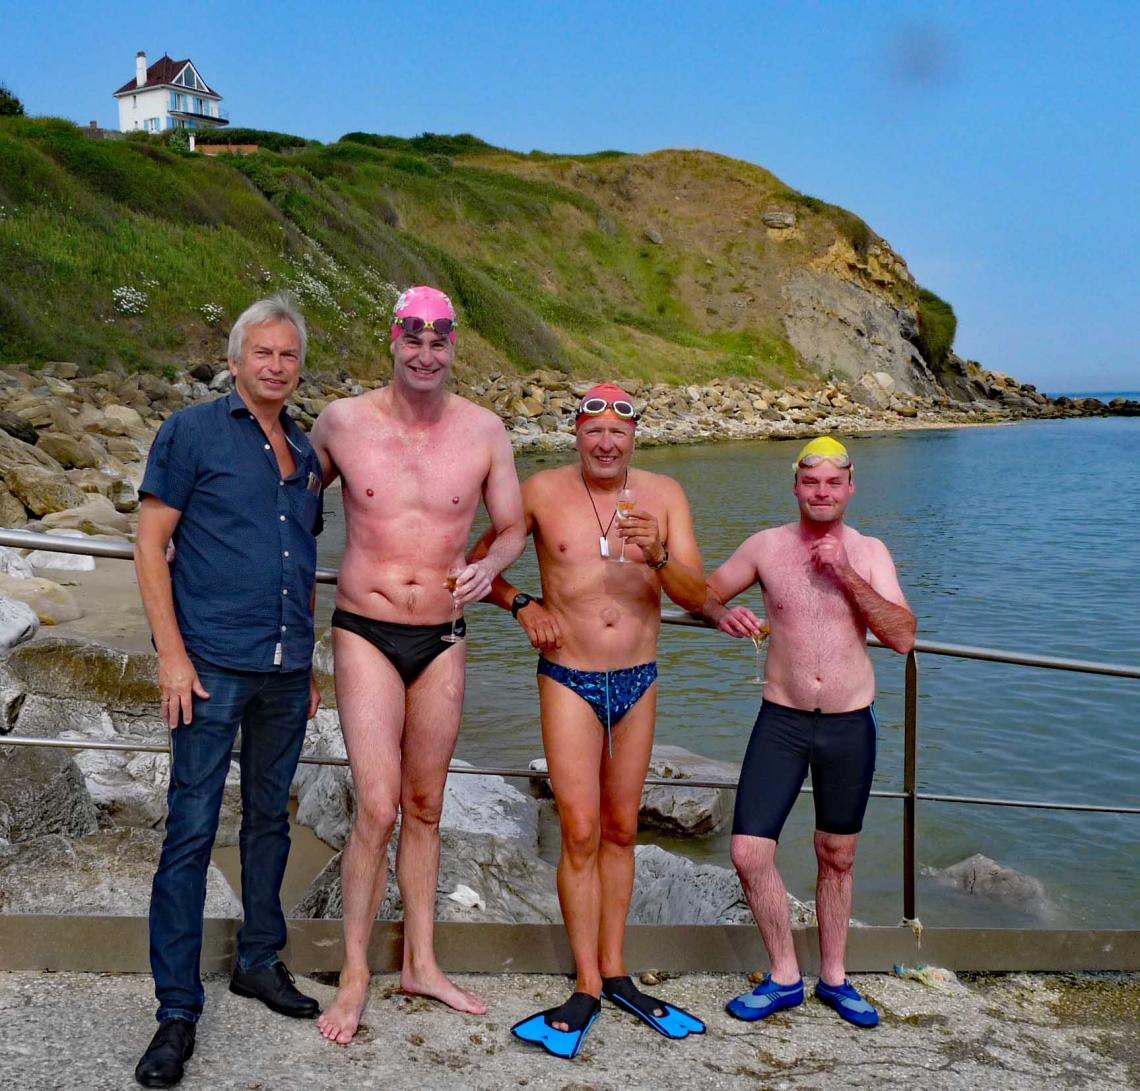 Nick Adams English Channel Solo swimmer completes the Oceans 14